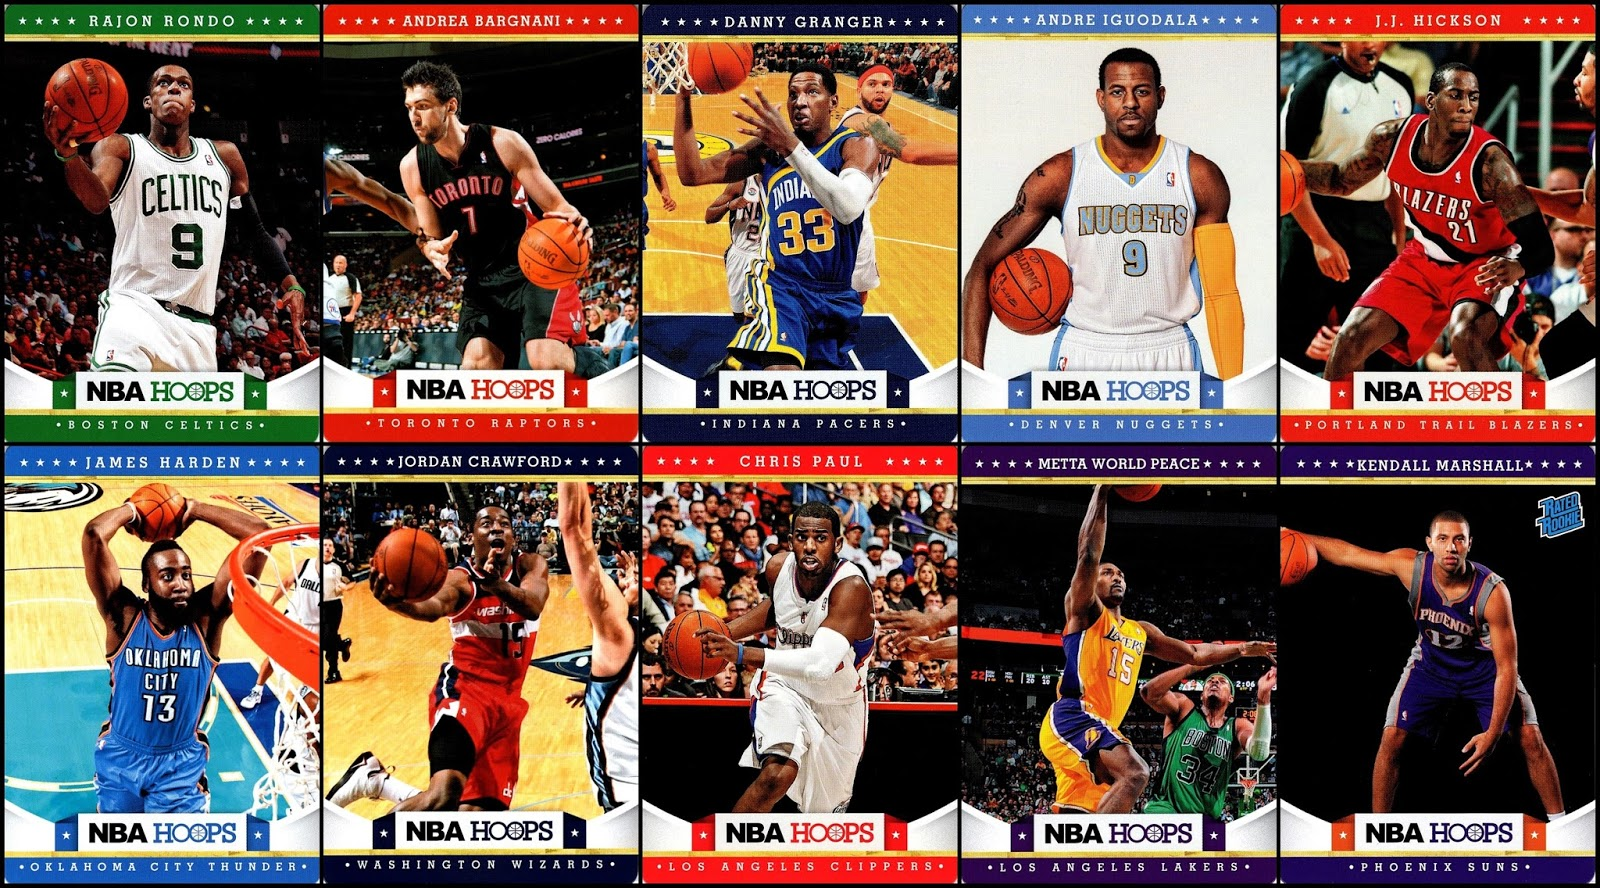 46a9a4e0e5f 10 new cards from the most recent food promo in the NBA. these are the  highlights for me